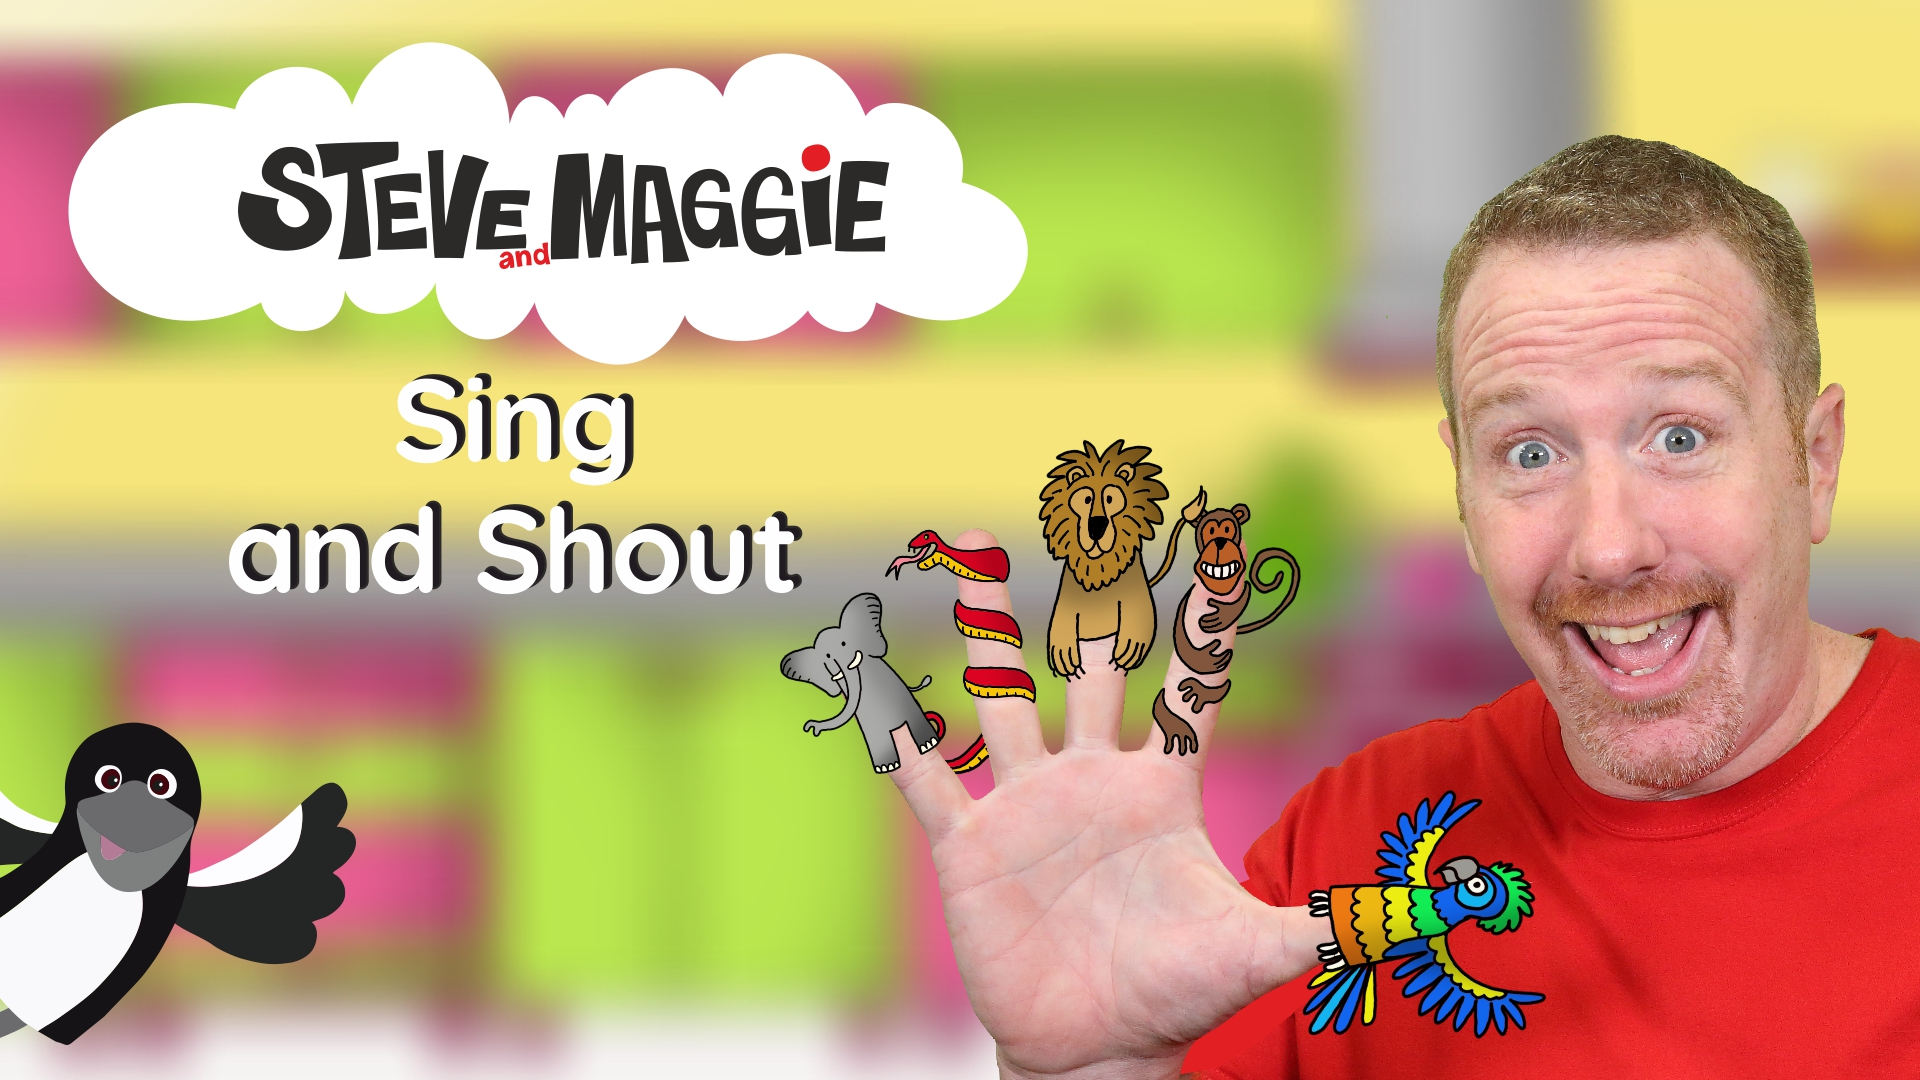 Steve and Maggie - Sing and Shout